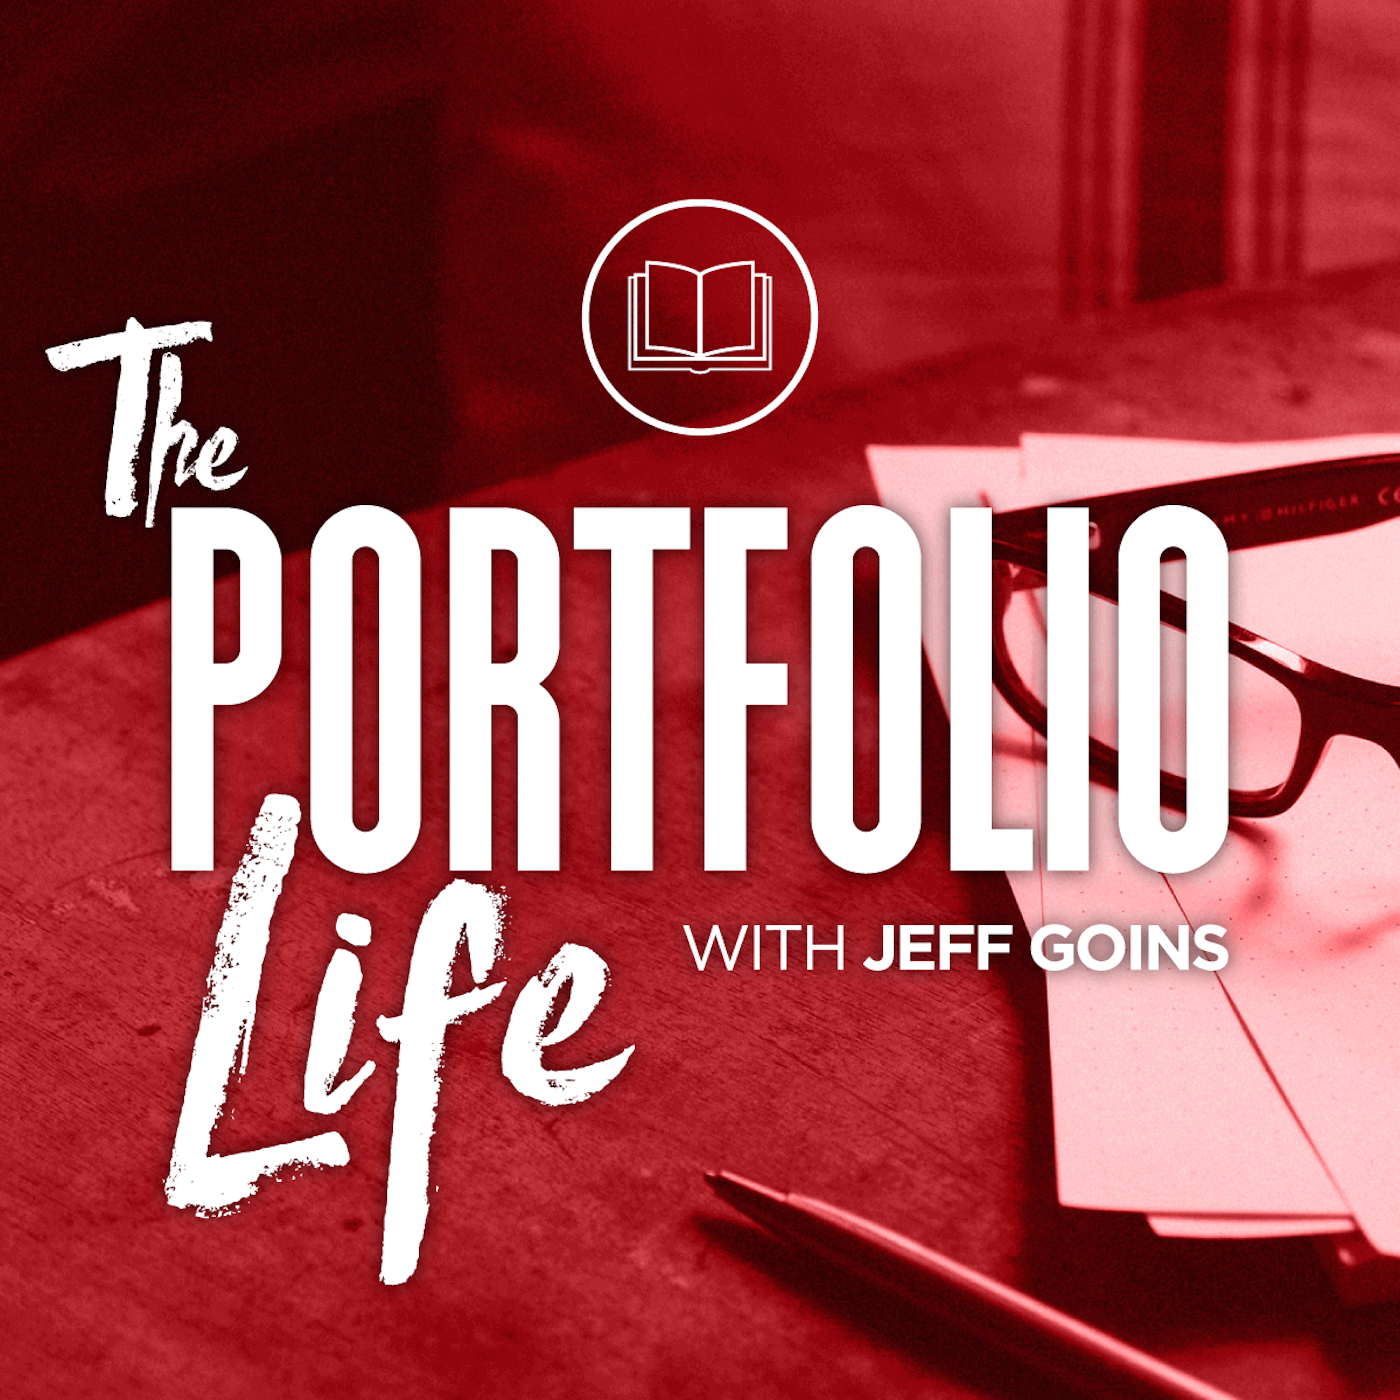 The Portfolio Life with Jeff Goins